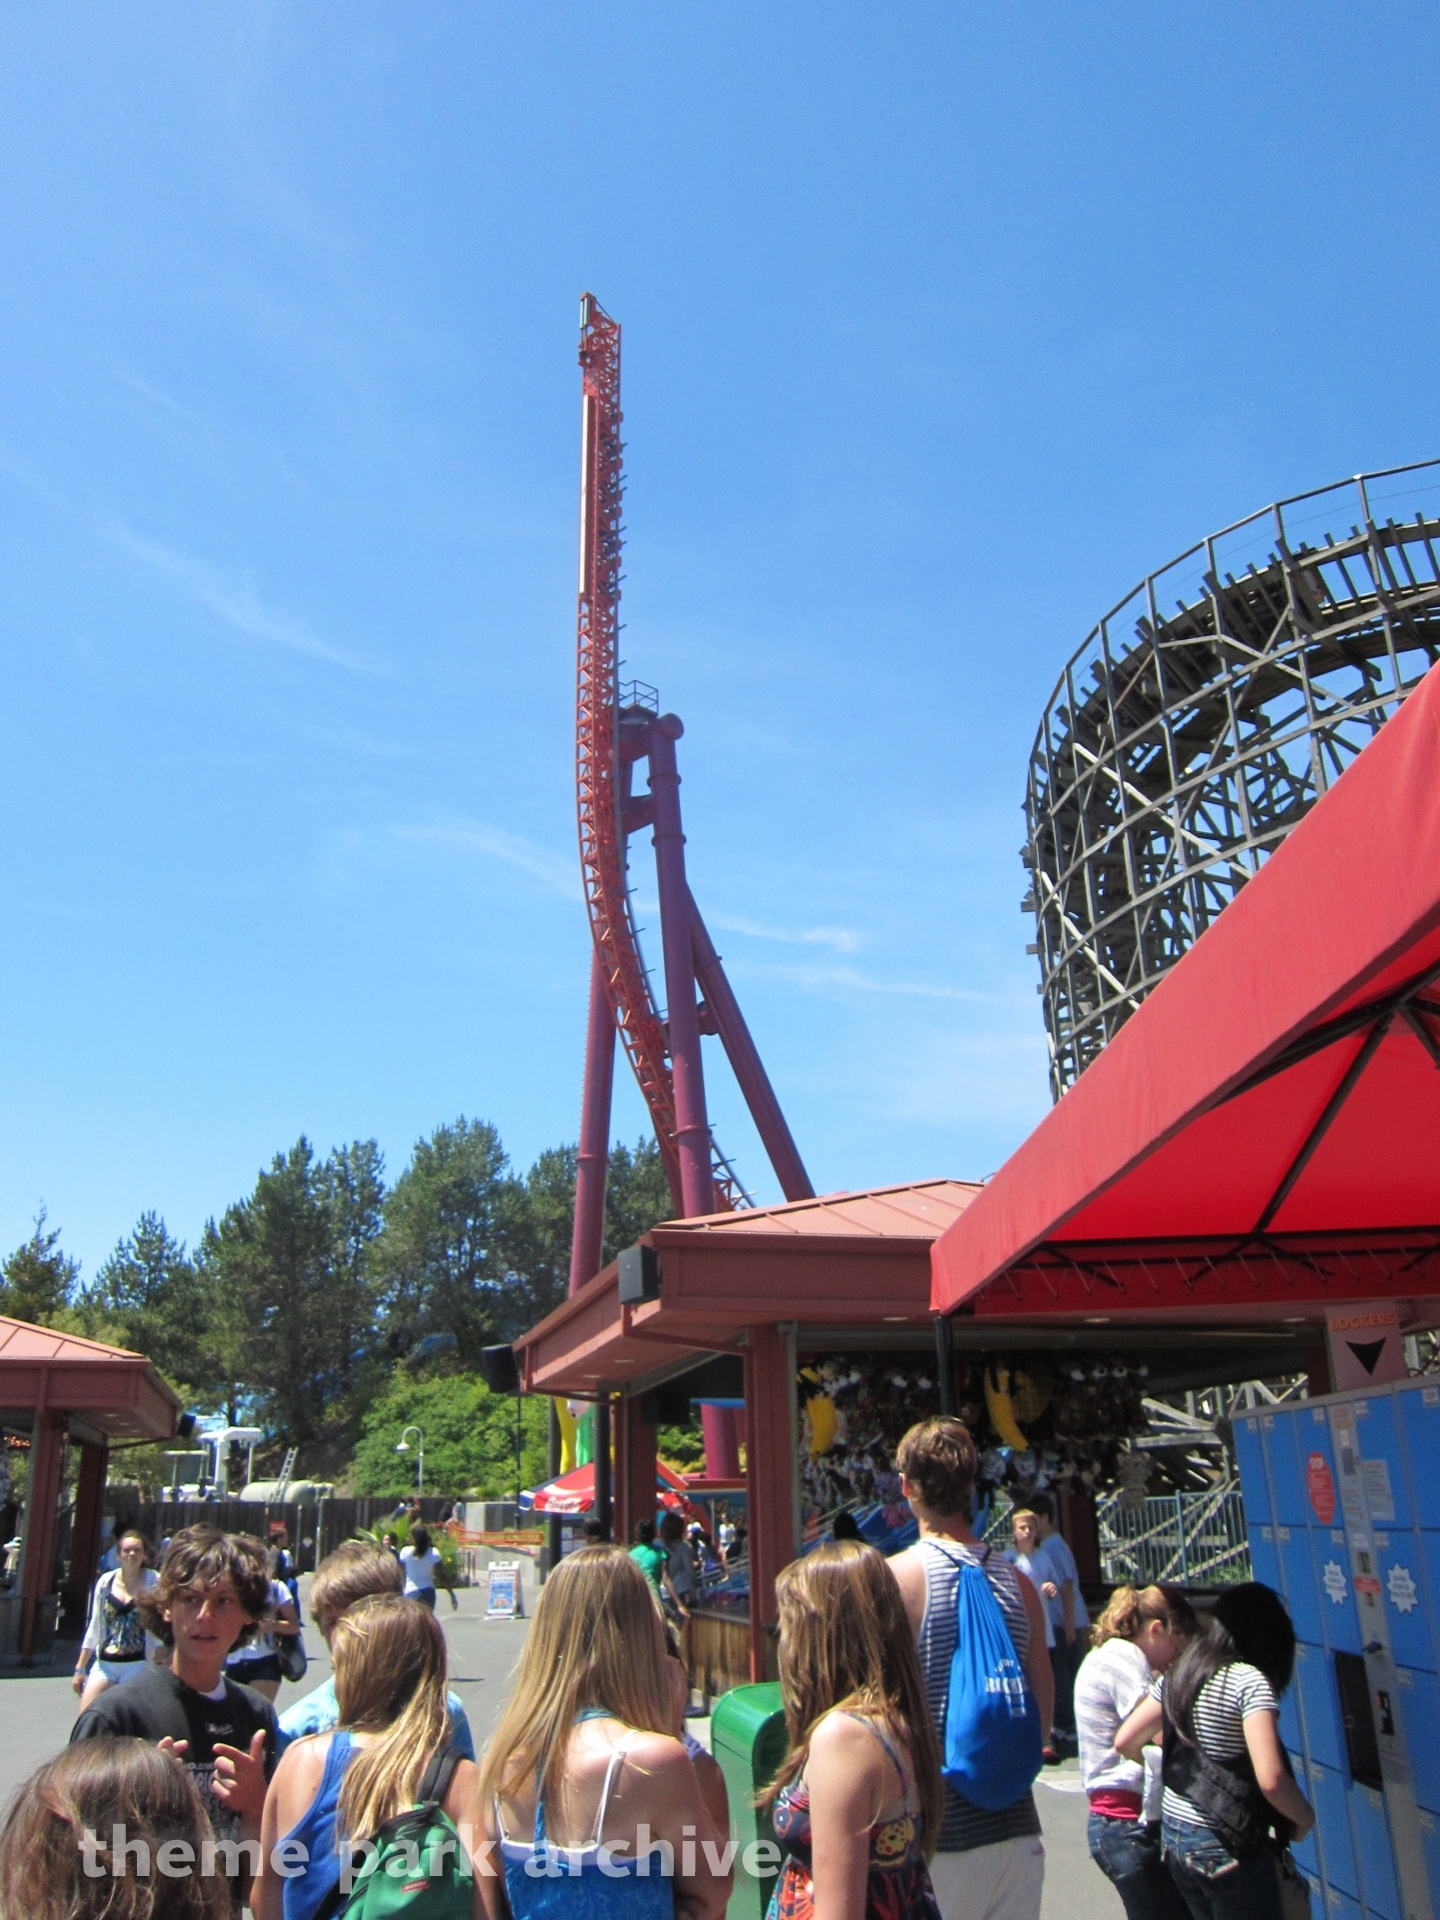 The Flash: Vertical Velocity at Six Flags Discovery Kingdom